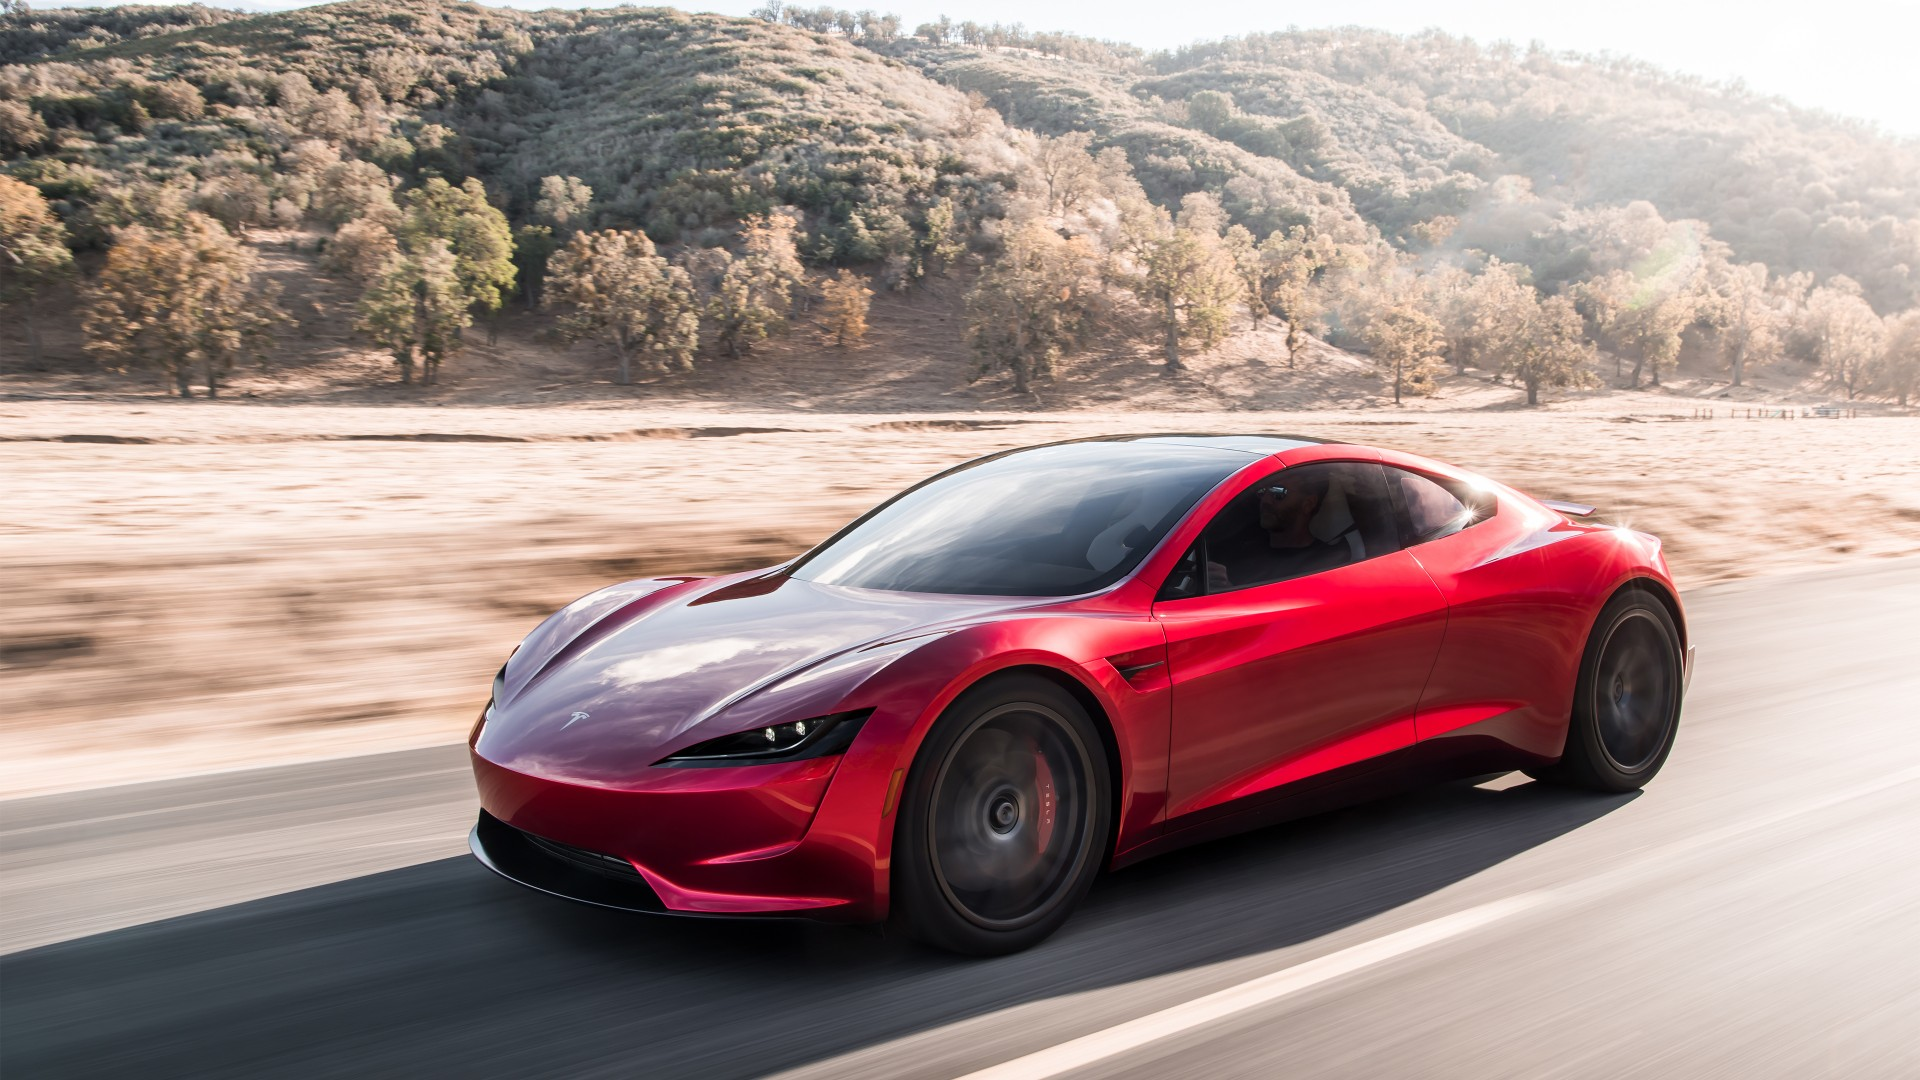 2020 Tesla Roadster 4K 5 Wallpaper | HD Car Wallpapers ...